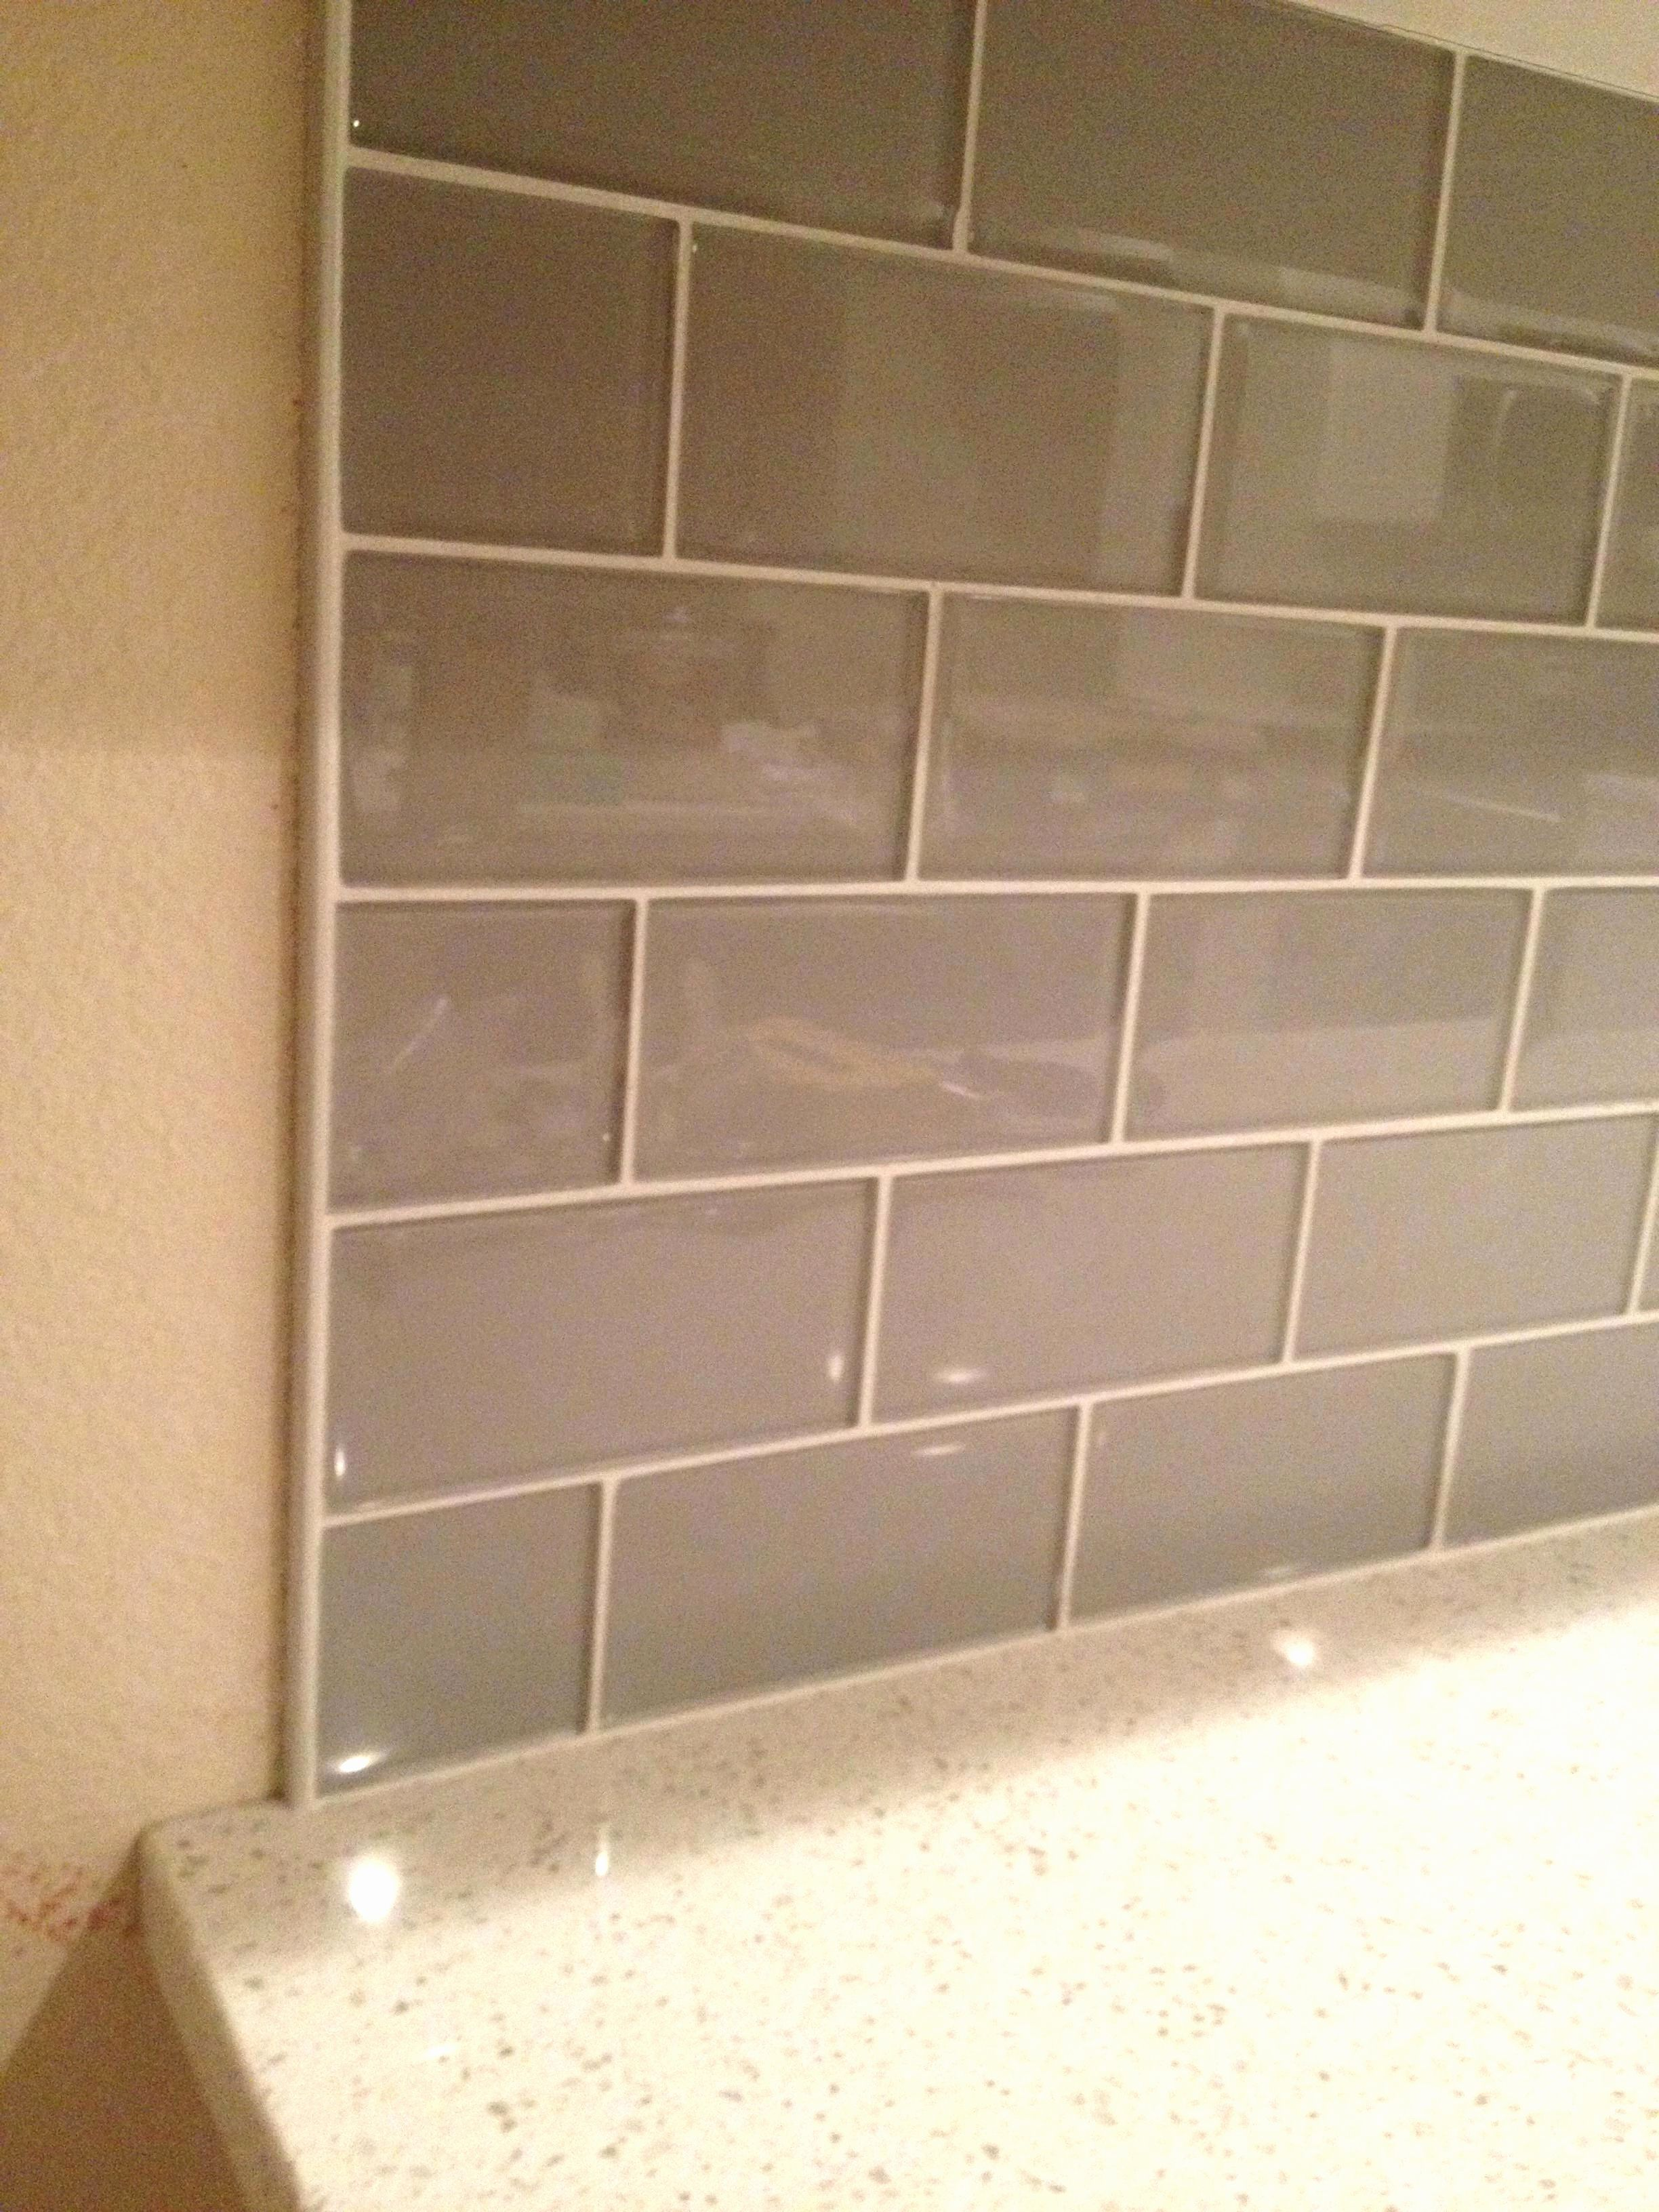 Kitchen Backsplash Trim Ideas Inspirational Backsplash Tile Trim Unique Backsplash Kitchen Backsplash Trim - Kitchen Ideas - Kitchen Ideas : kitchen backsplash trim - hauntedcathouse.org